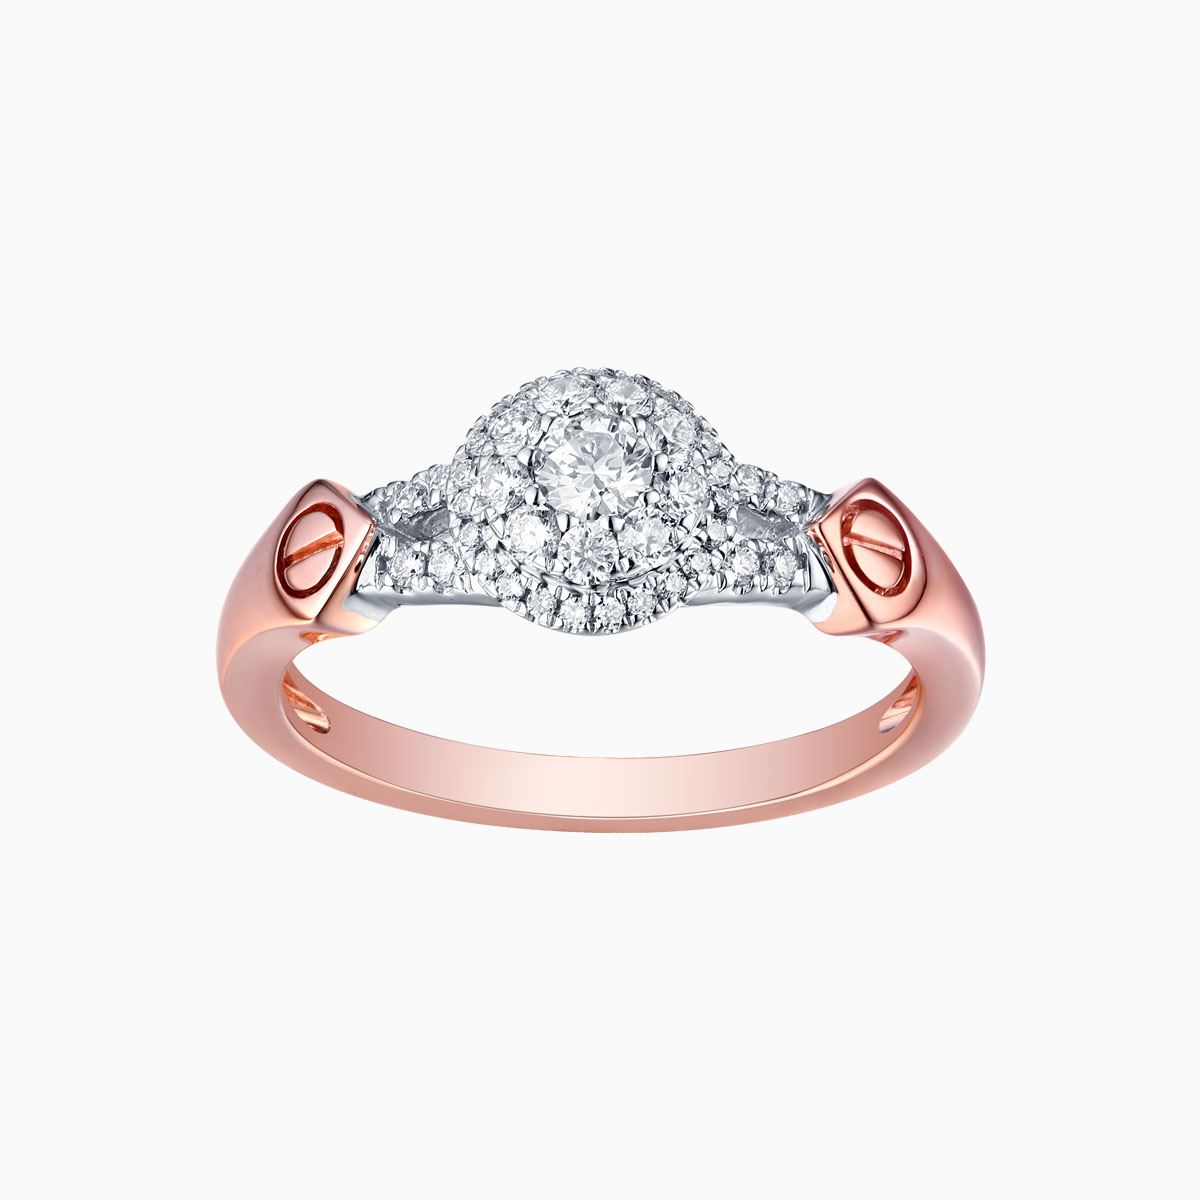 R17592WHT- 14K Rose Gold Diamond Ring, 0.39 TCW